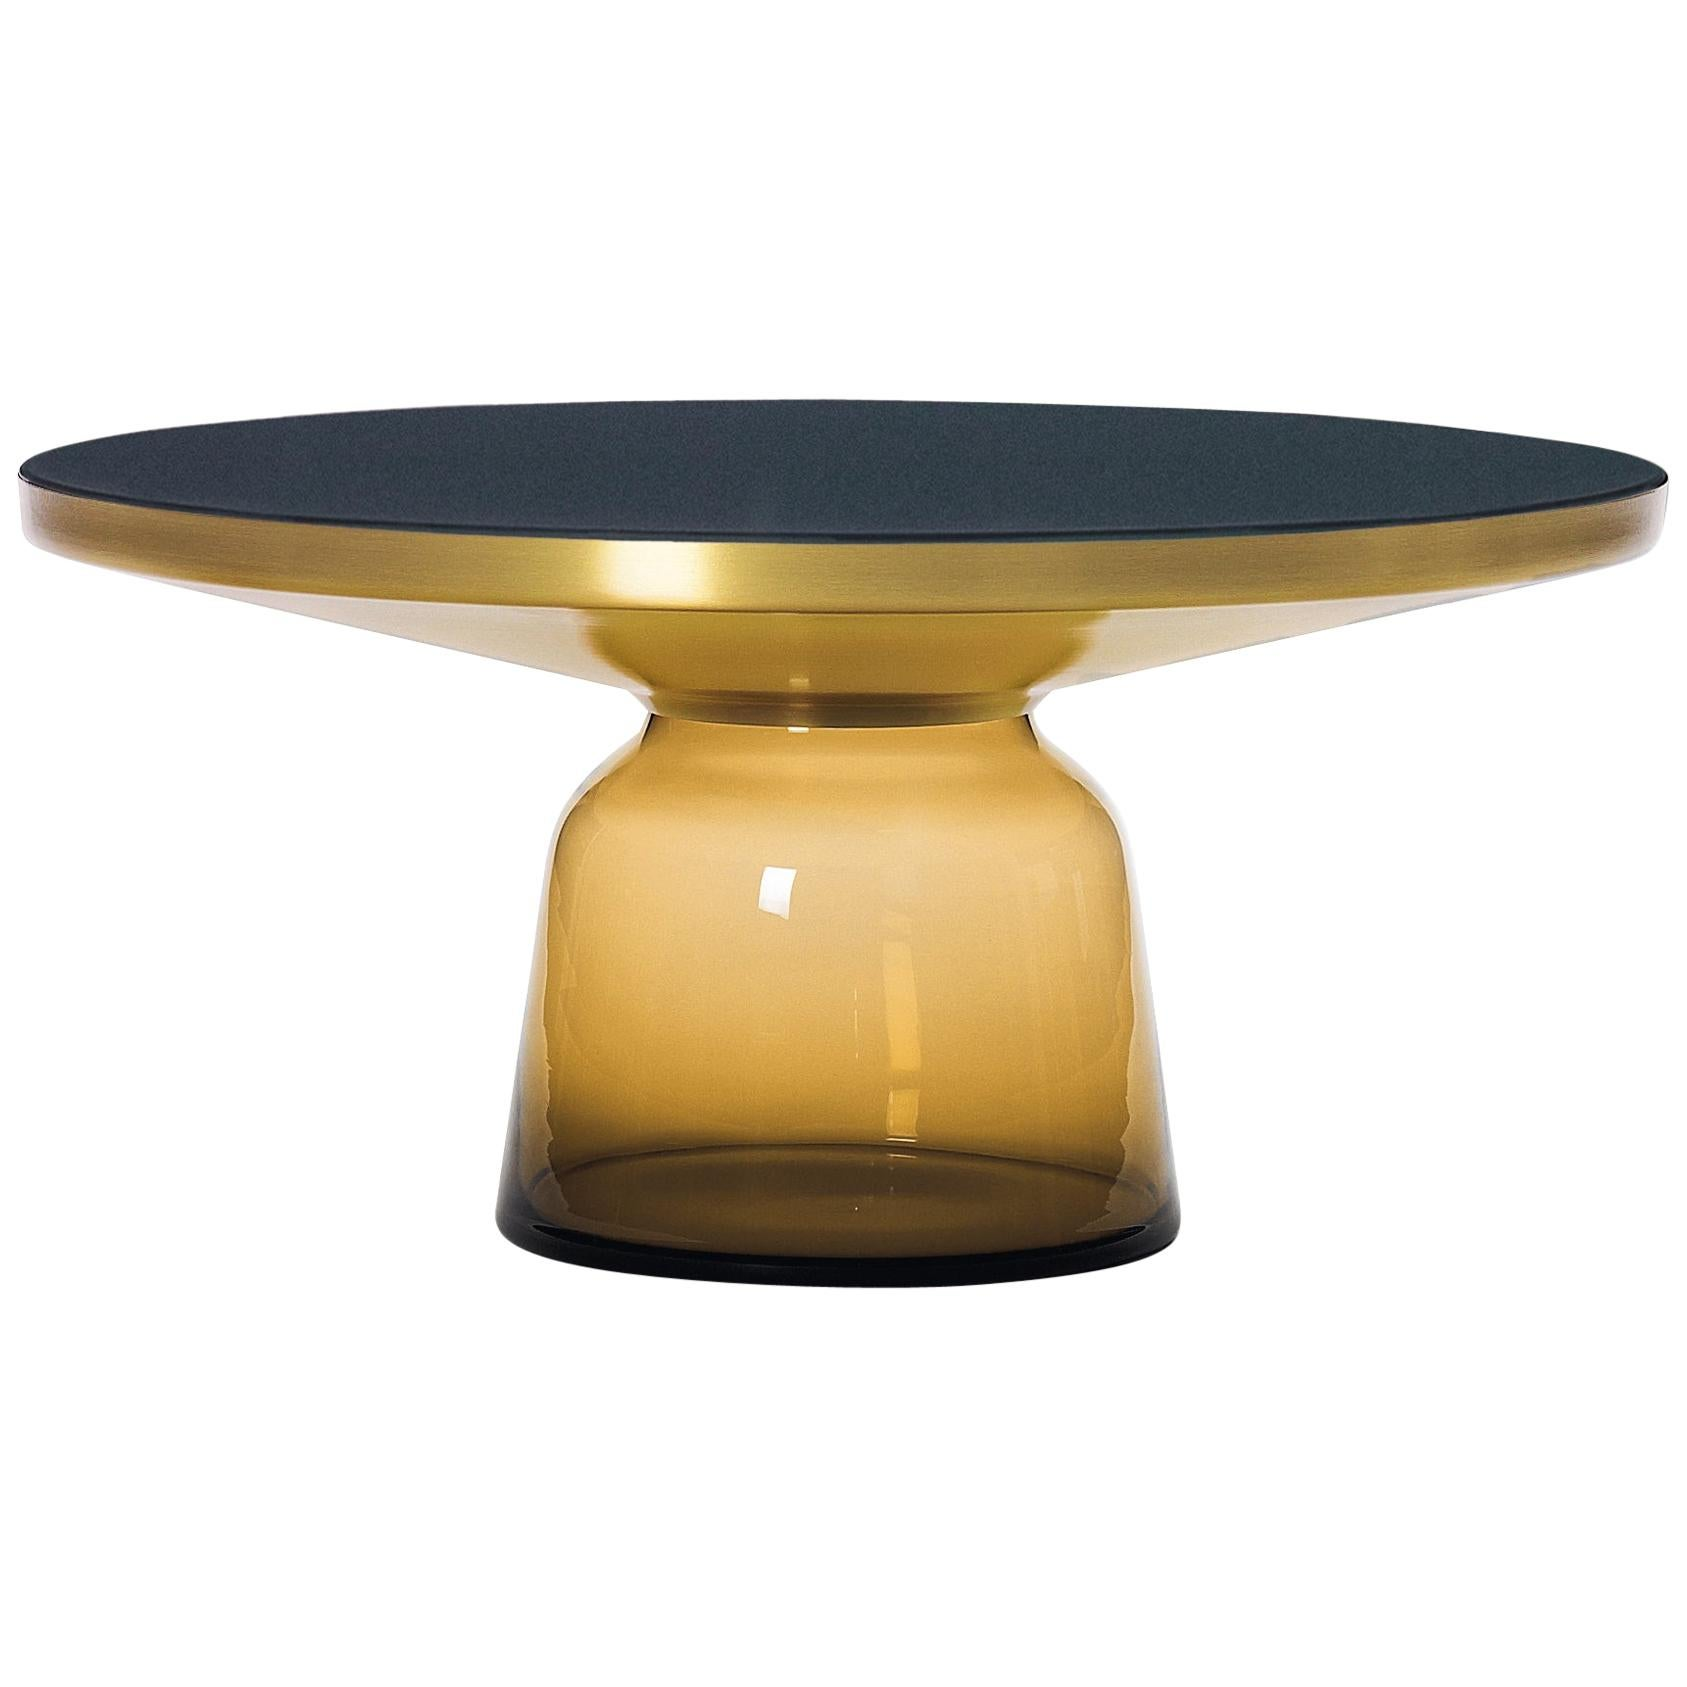 ClassiCon Bell Coffee Table in Brass and Amber Orange by Sebastian Herkner